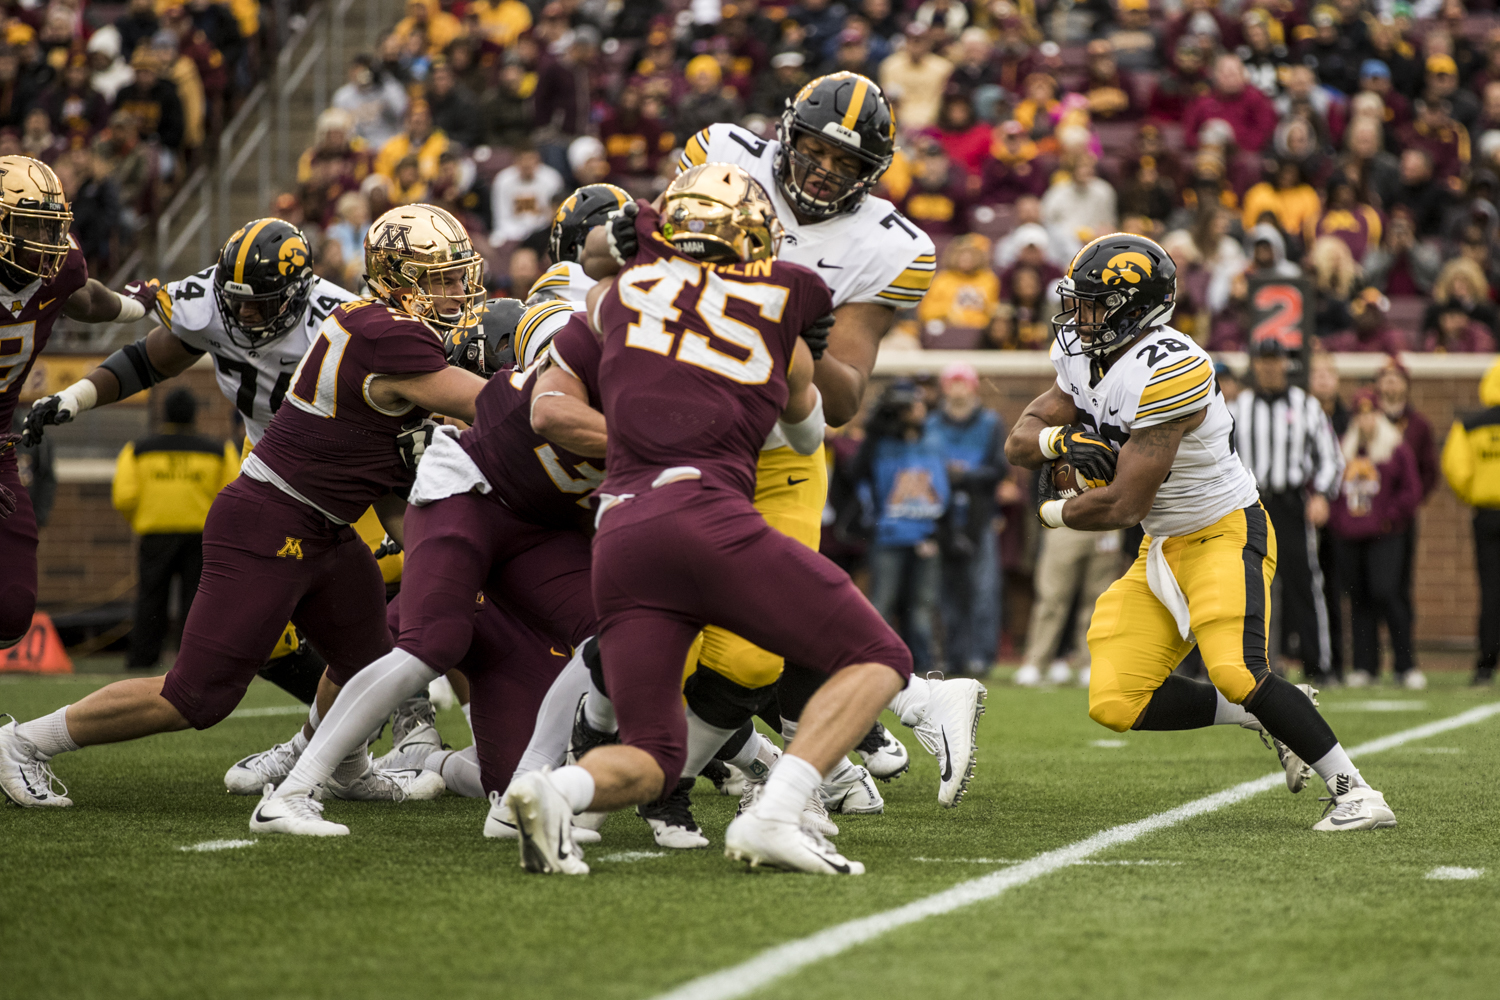 Iowa+running+back+Toren+Young+carries+the+ball+during+Iowa%27s+game+against+Minnesota+at+TCF+Bank+Stadium+on+Saturday%2C+October+6%2C+2018.+The+Hawkeyes+defeated+the+Golden+Gophers+48-31.